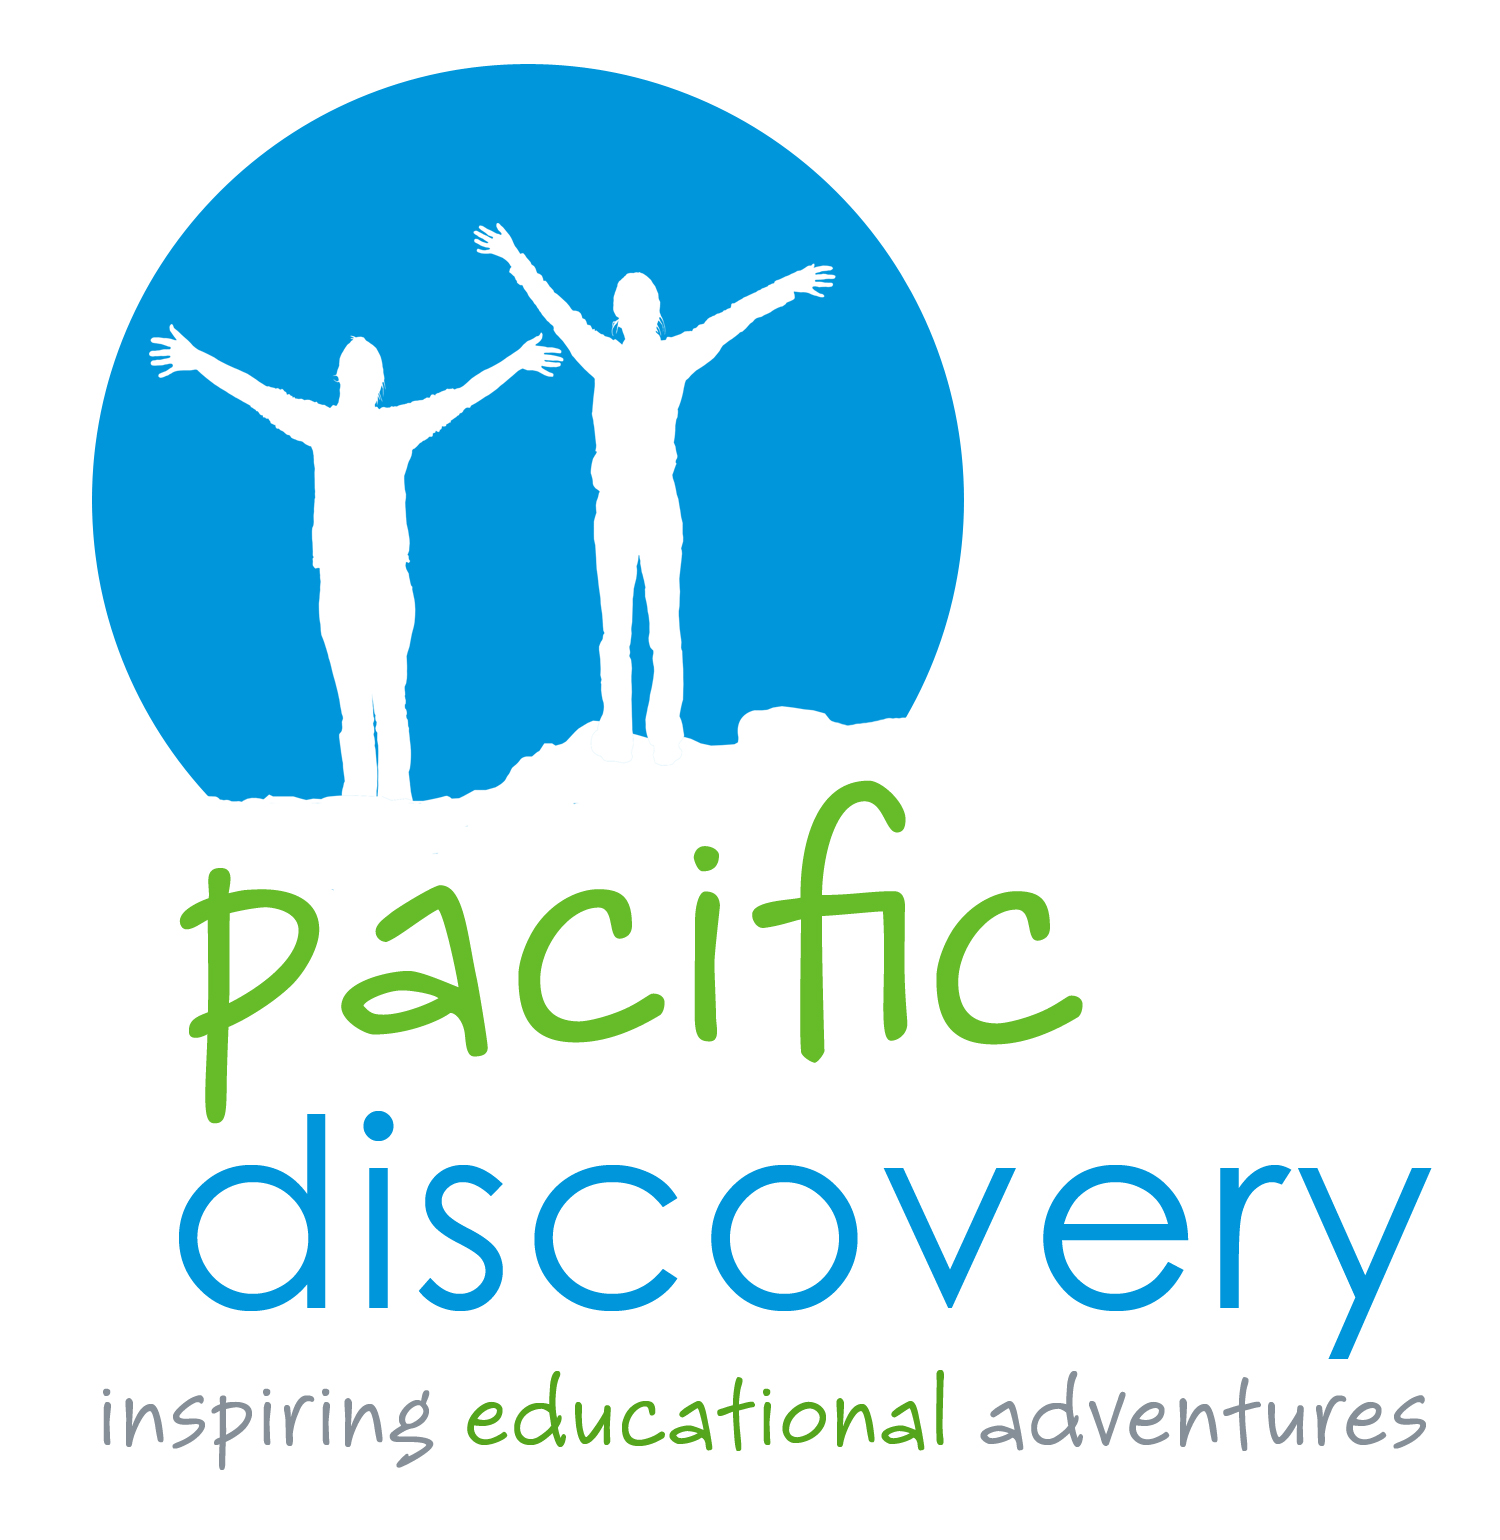 Summer Program Pacific Discovery - Gap Year & Summer Programs